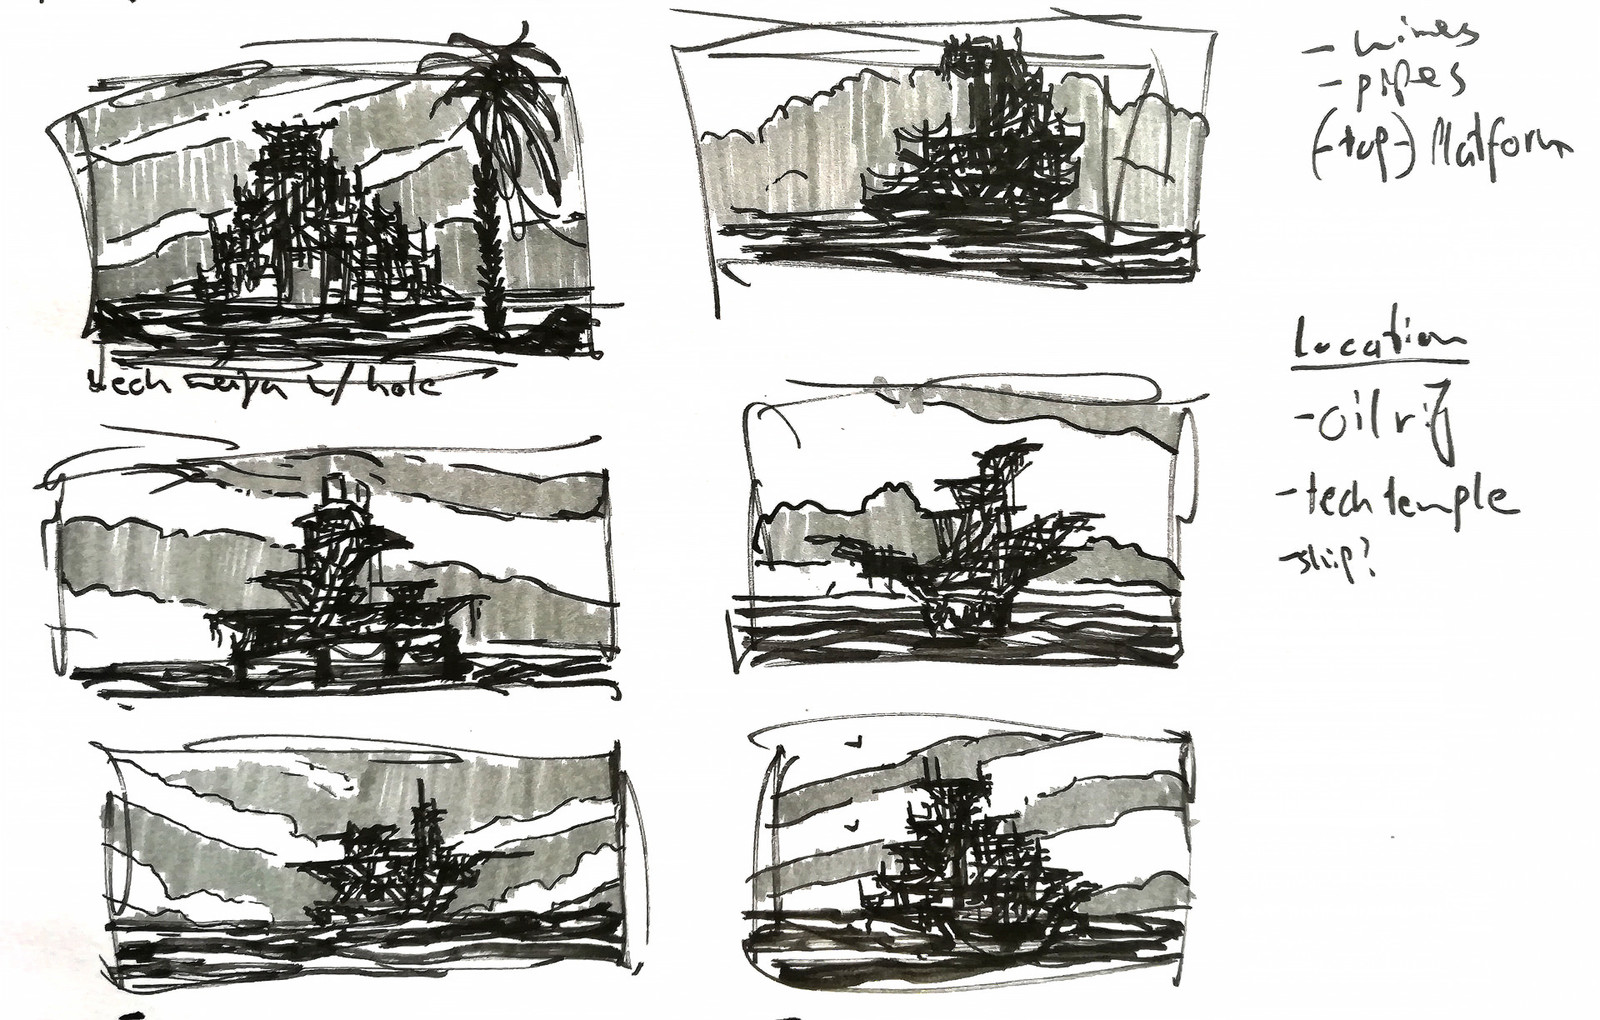 Here my thumbnails. They were my only reference for the shape of the platforms as I want to stick close to the looseness of ideas in quick sketches. Yet, much got lost in the modelling process.